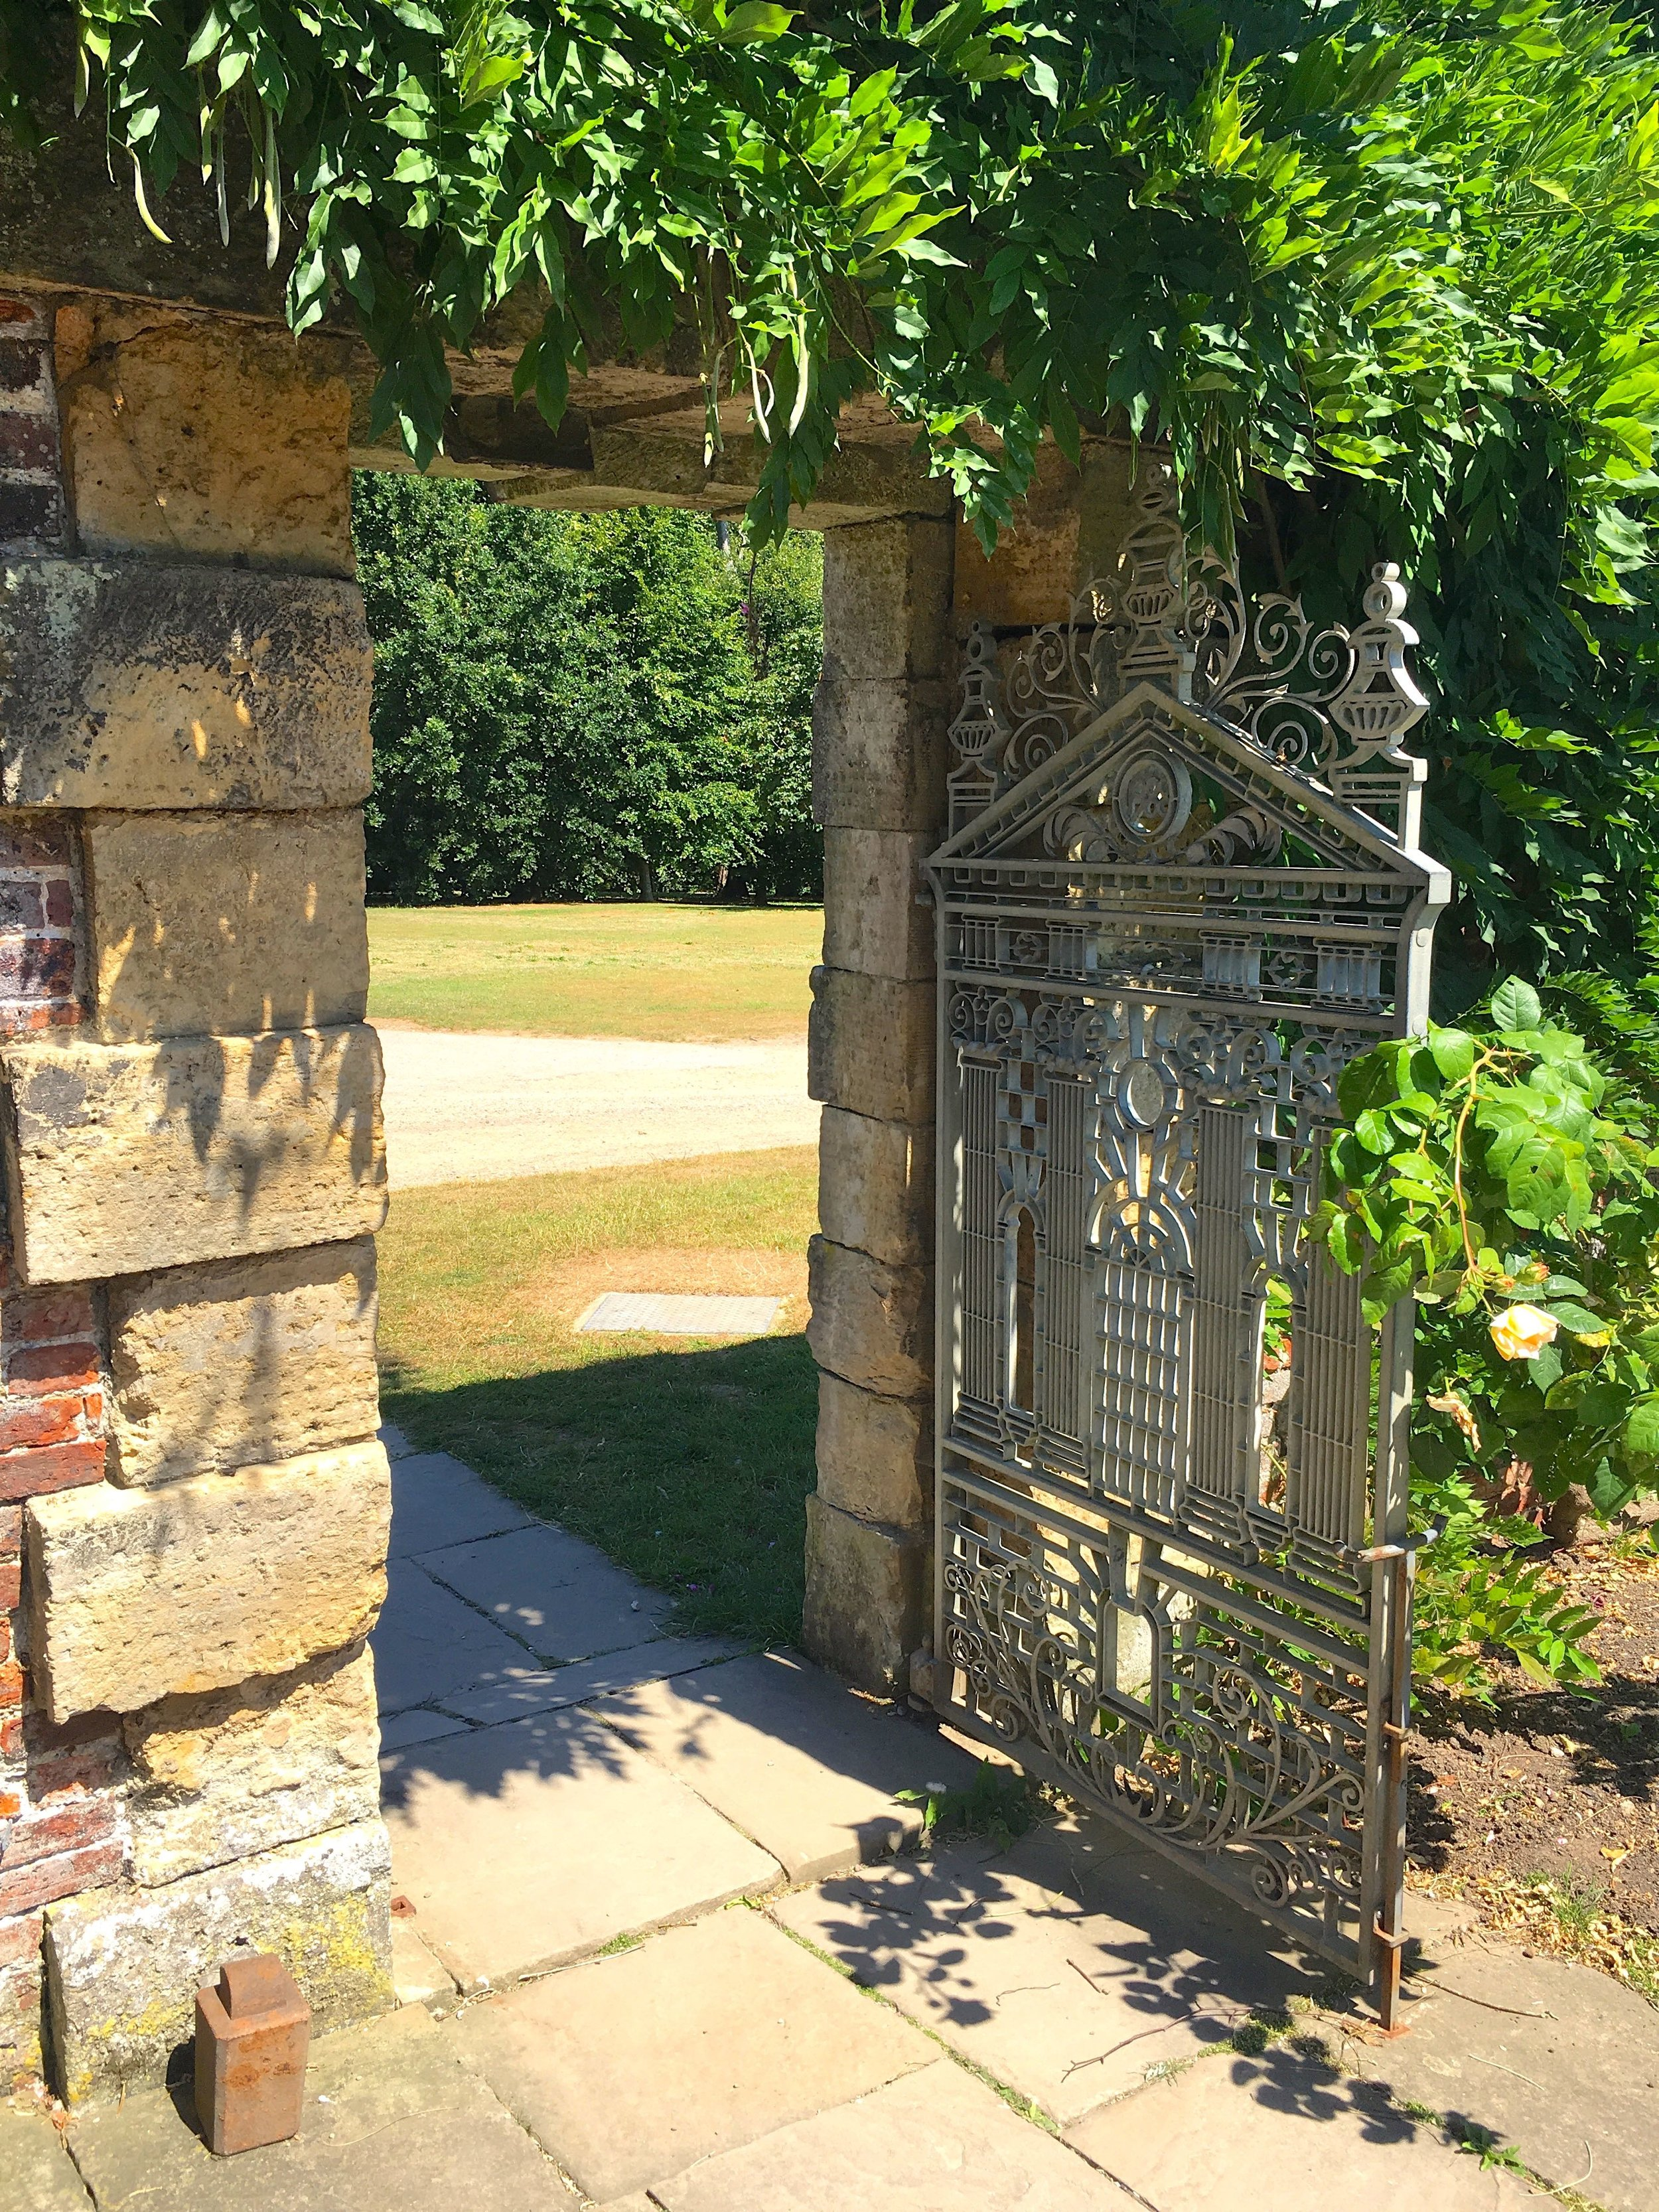 THE GATE TO THE POTAGER, MY FAVOURITE PART OF THE GARDEN